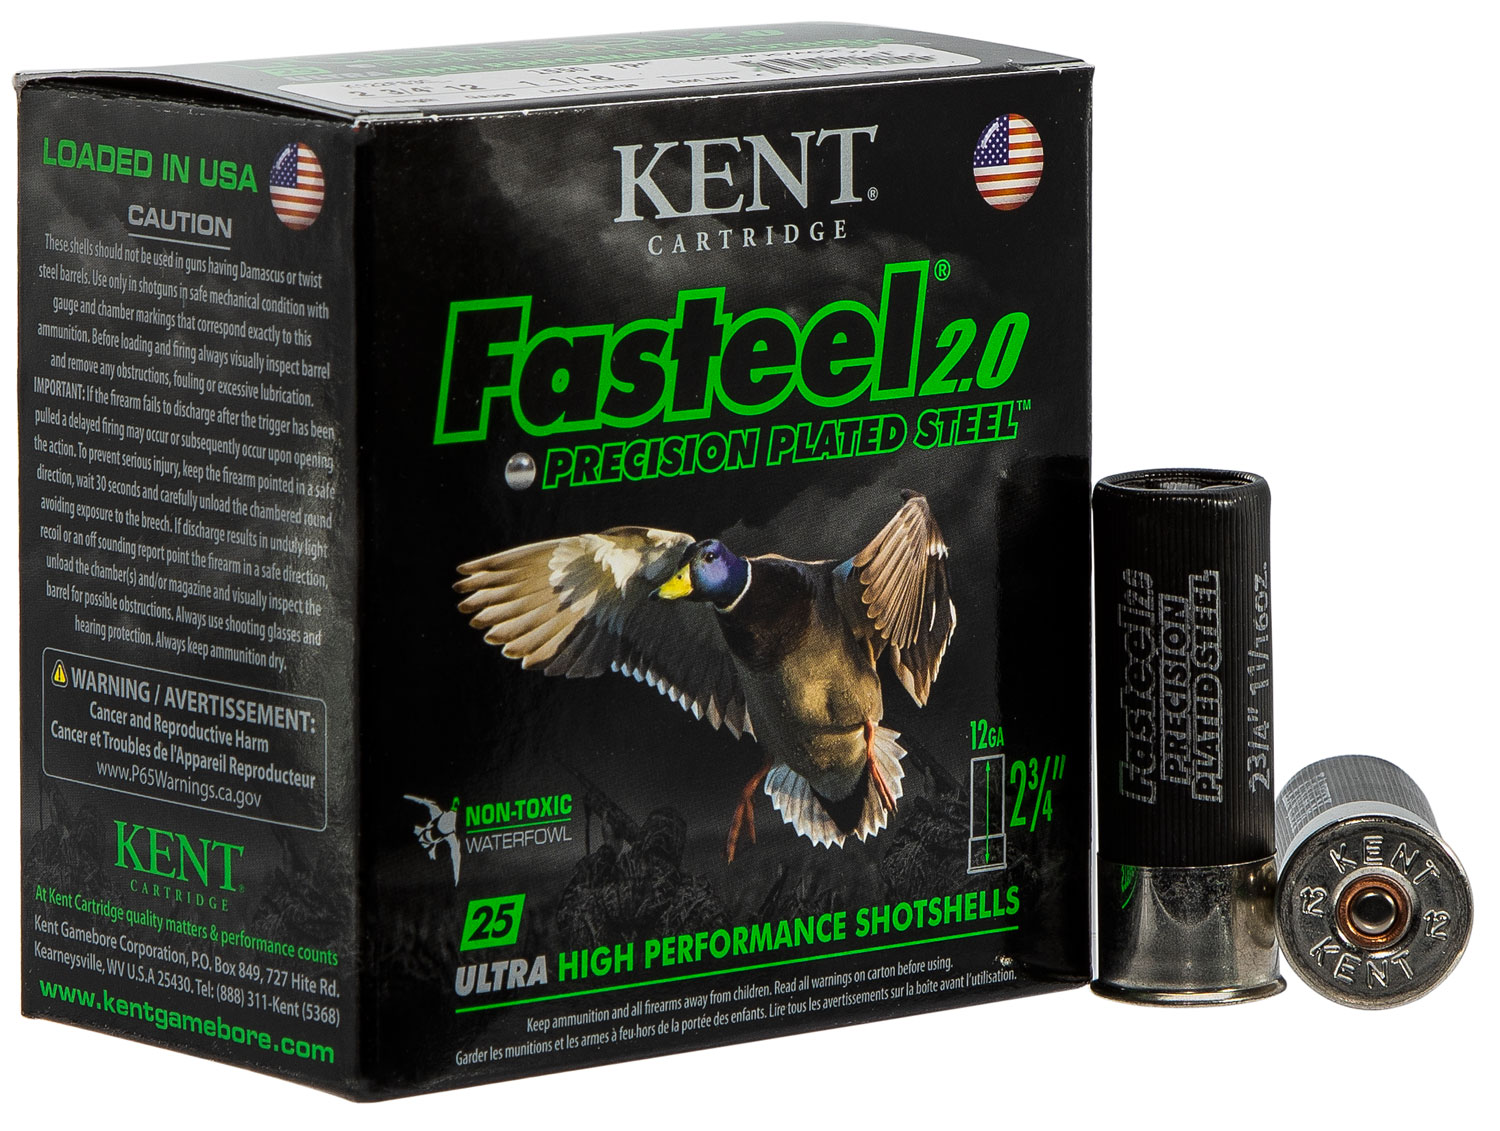 Kent Cartridge K122FS303 Fasteel 2.0  12 Gauge 2.75